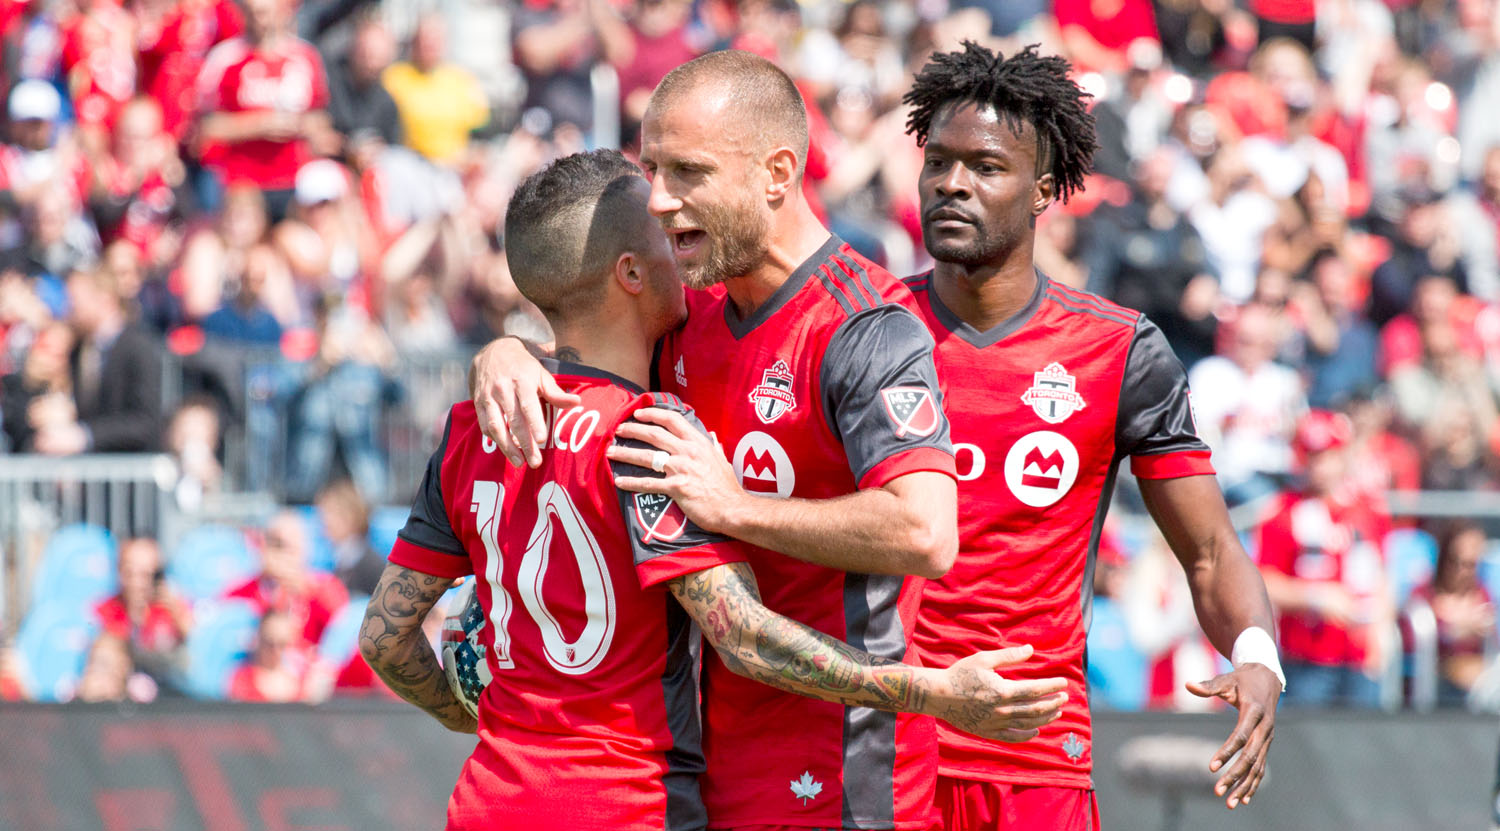 Benoît Cheyrou hugs Sebastian Giovinco after he converts the penalty kick to take Toronto FC to 1-0 in the first half.Image by Dennis Marciniak of denMAR Media.